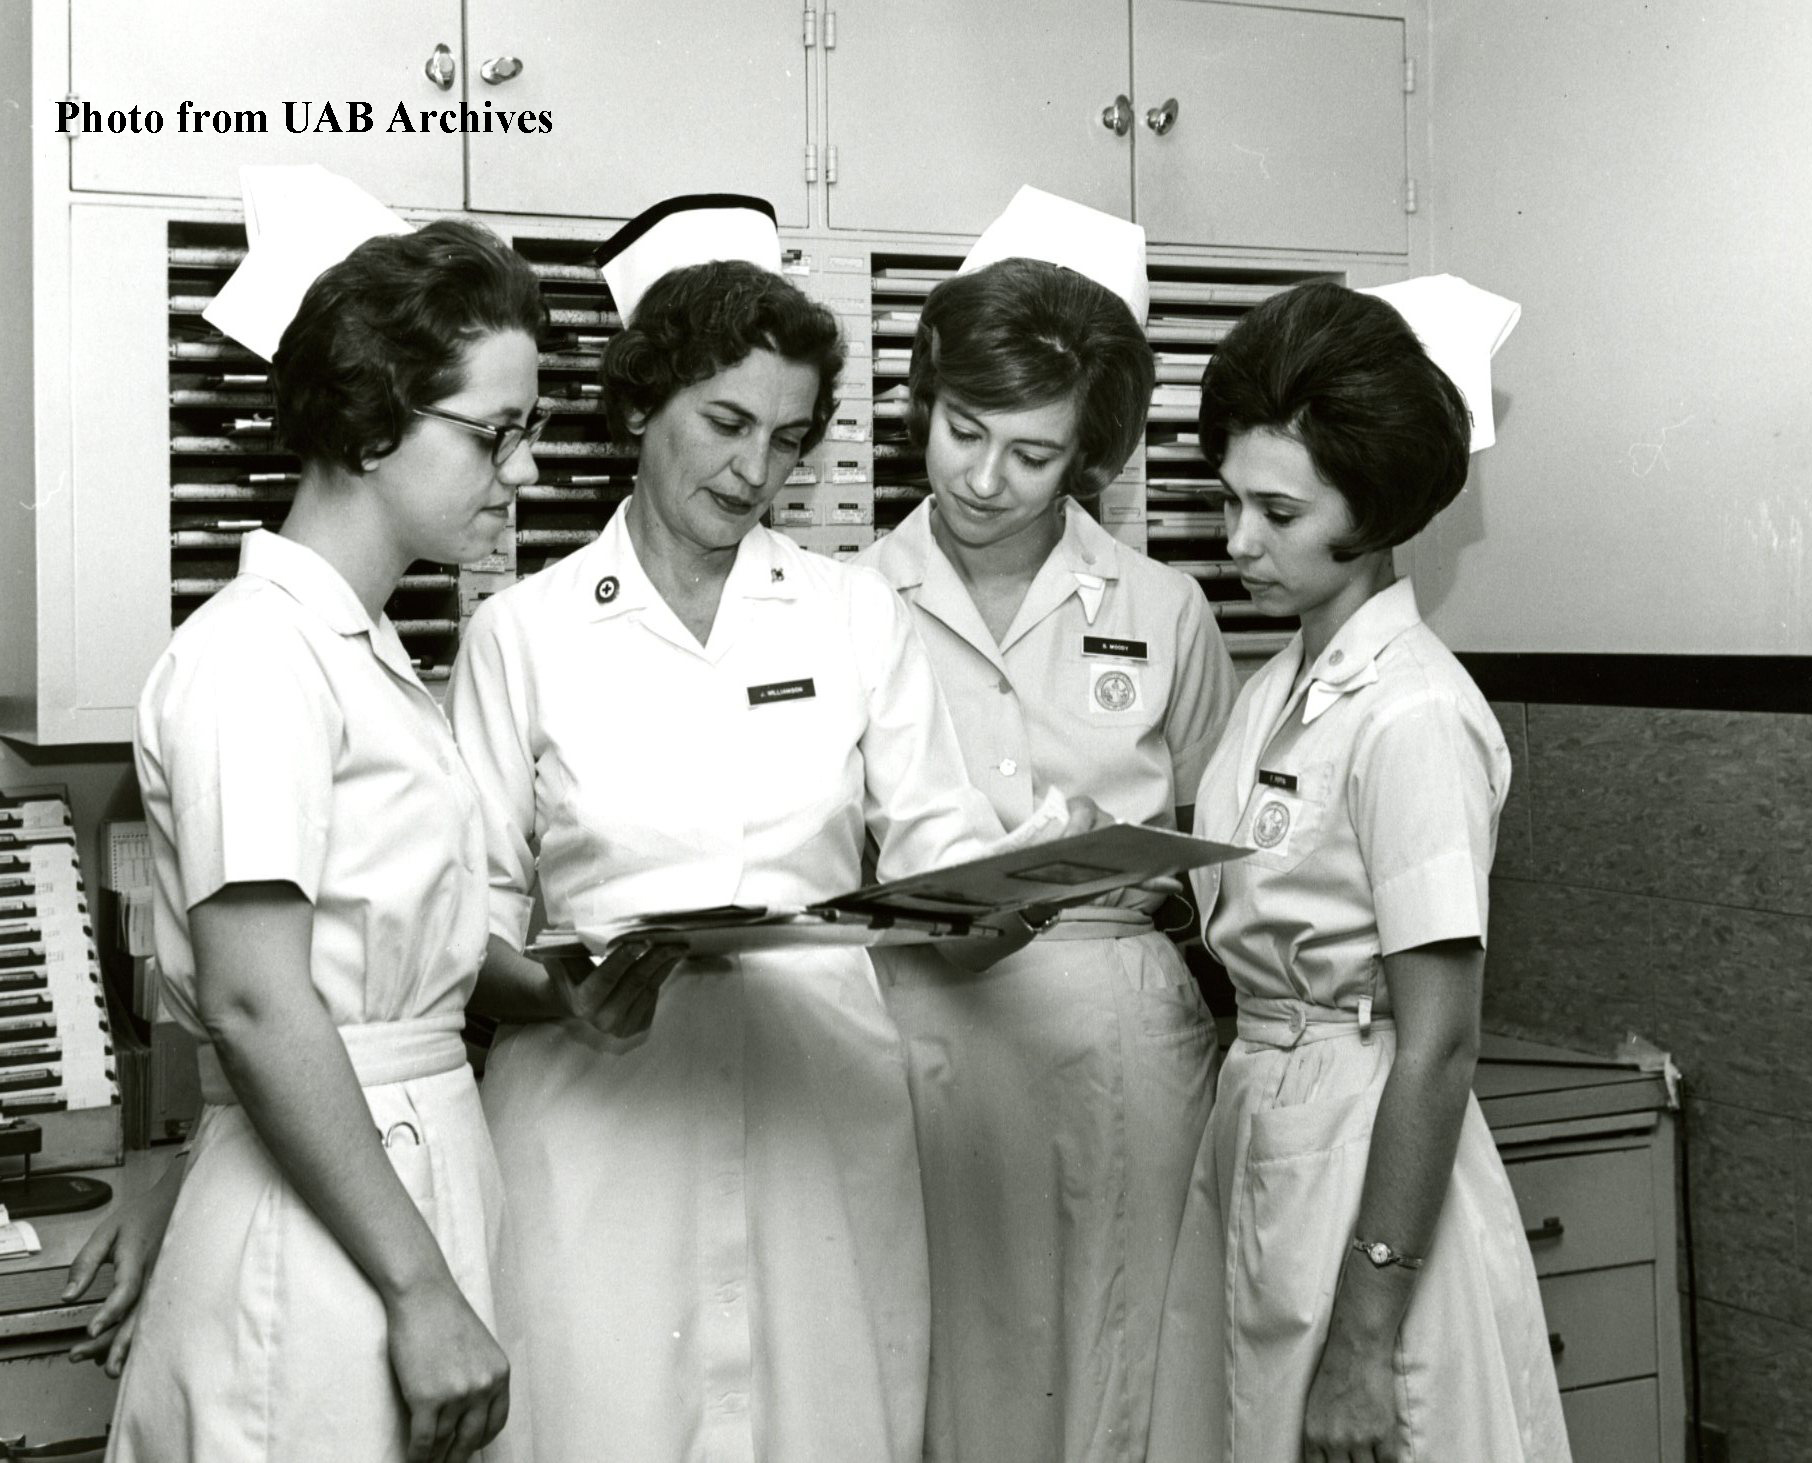 Four female nursing students study a patient chart